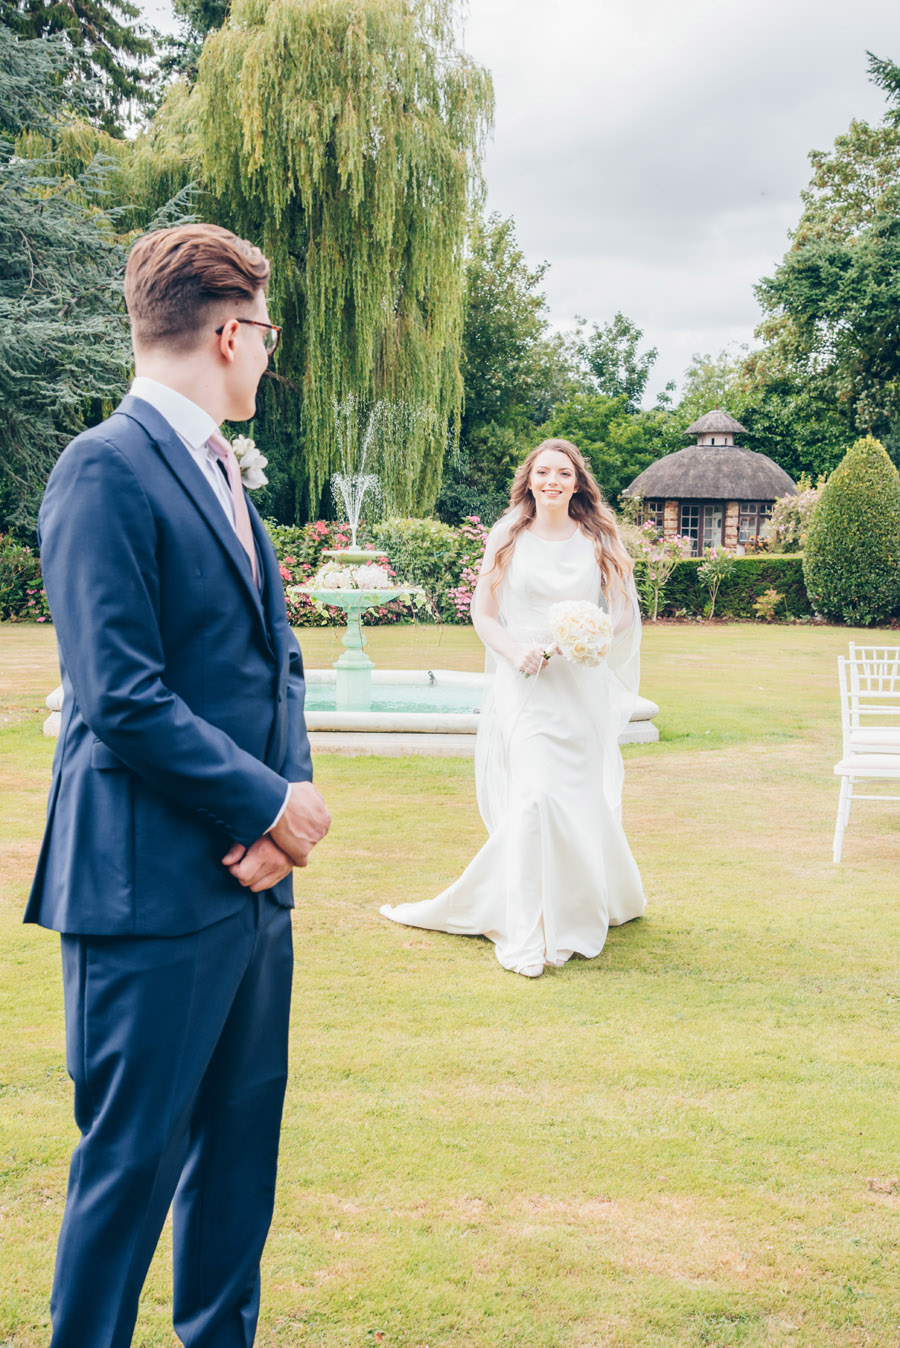 Timeless Elegance and beautiful micro wedding inspiration at New Lodge Lawns (17)